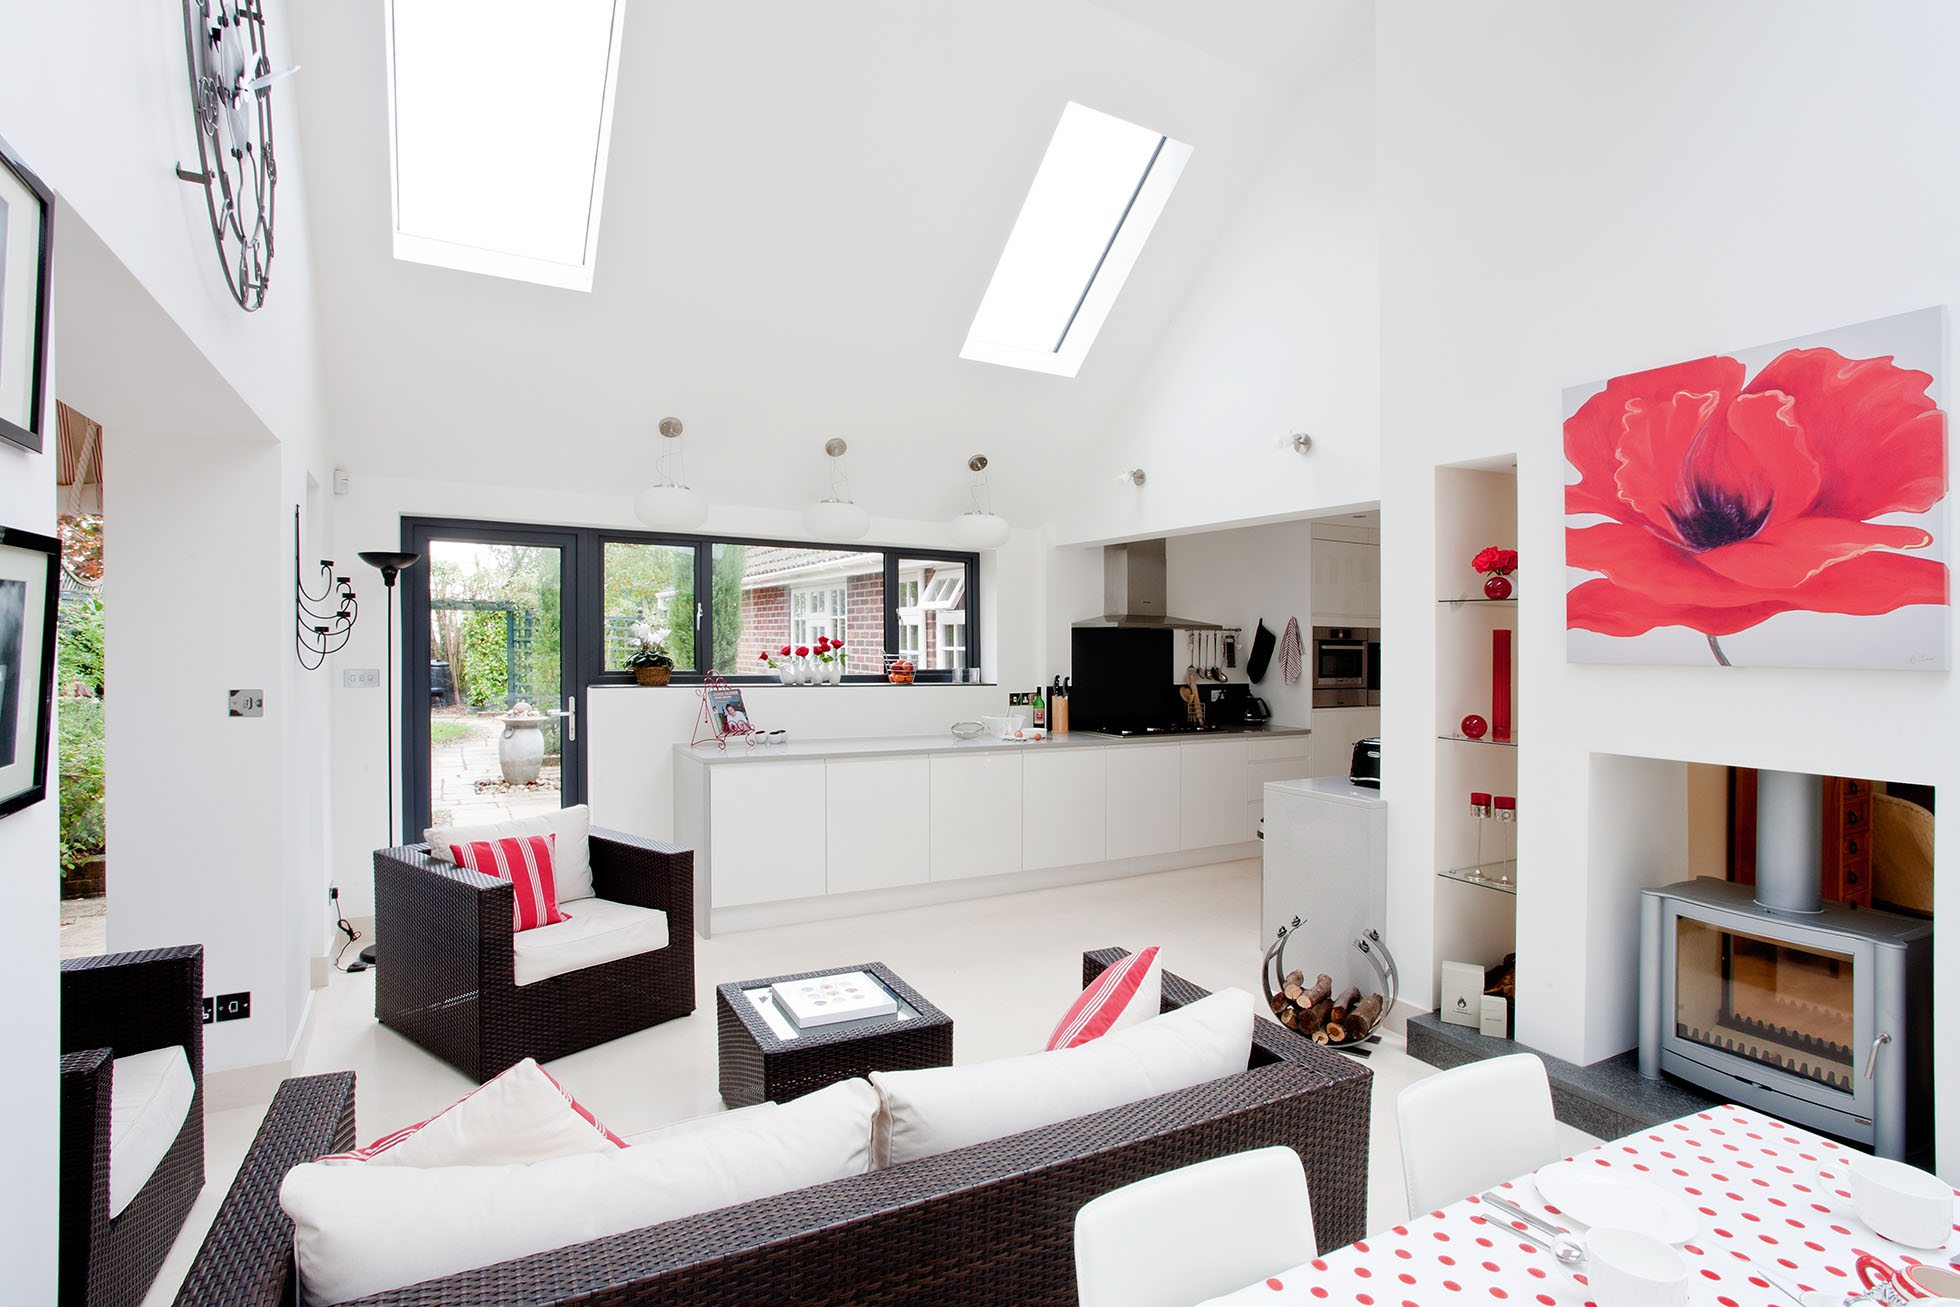 Kitchen And Living Room Extensions - Living Room Ideas